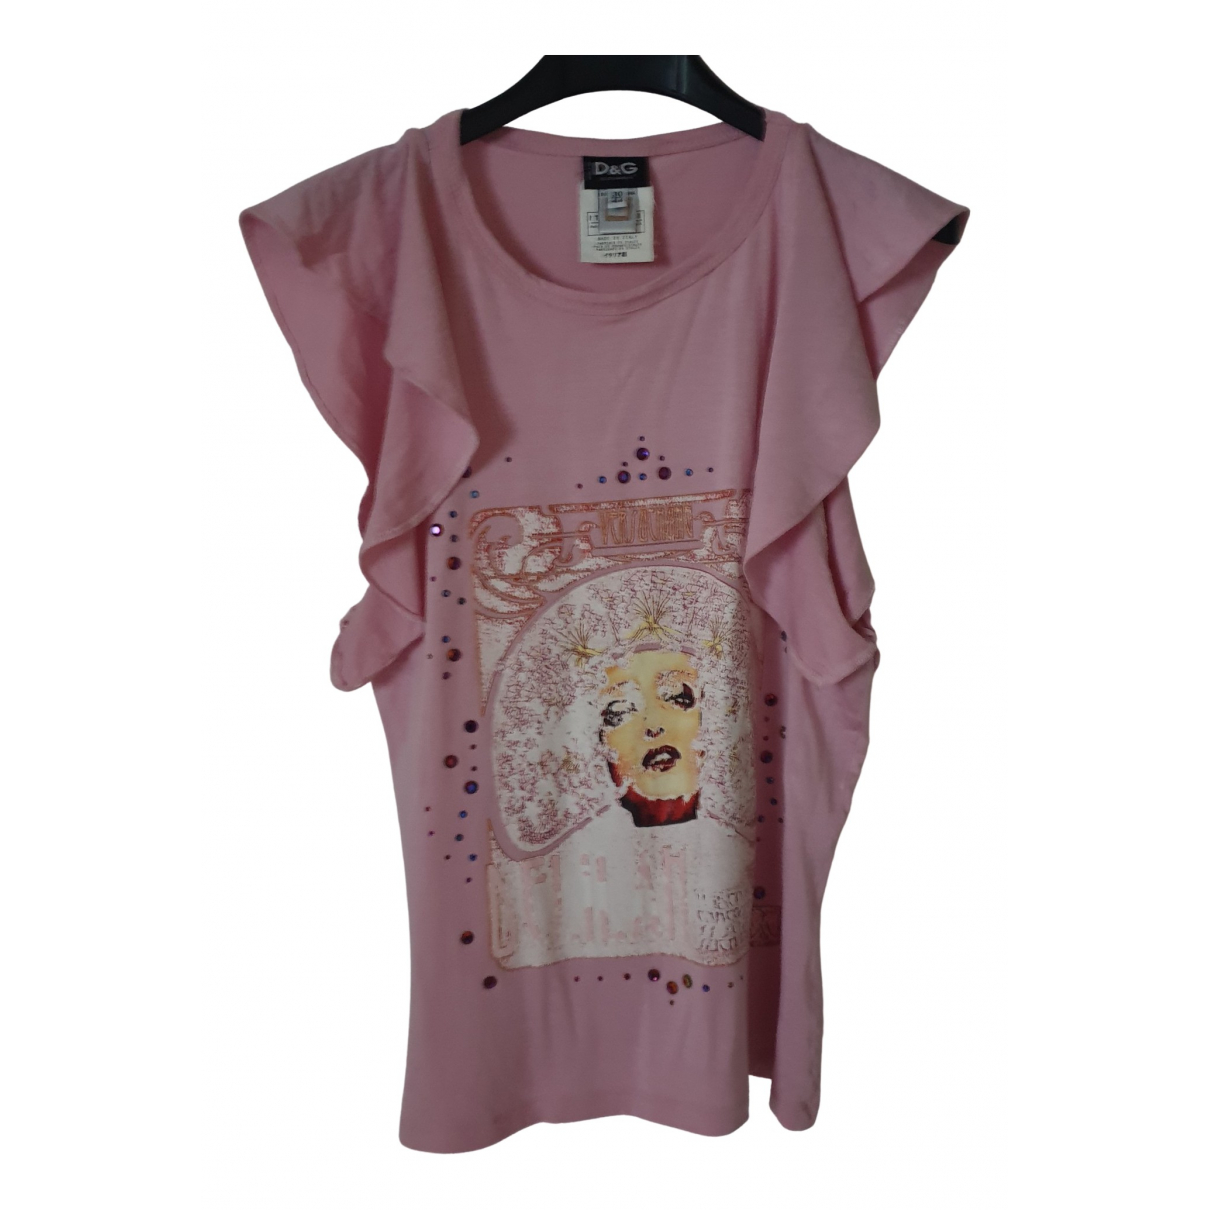 D&g \N Top in  Rosa Baumwolle